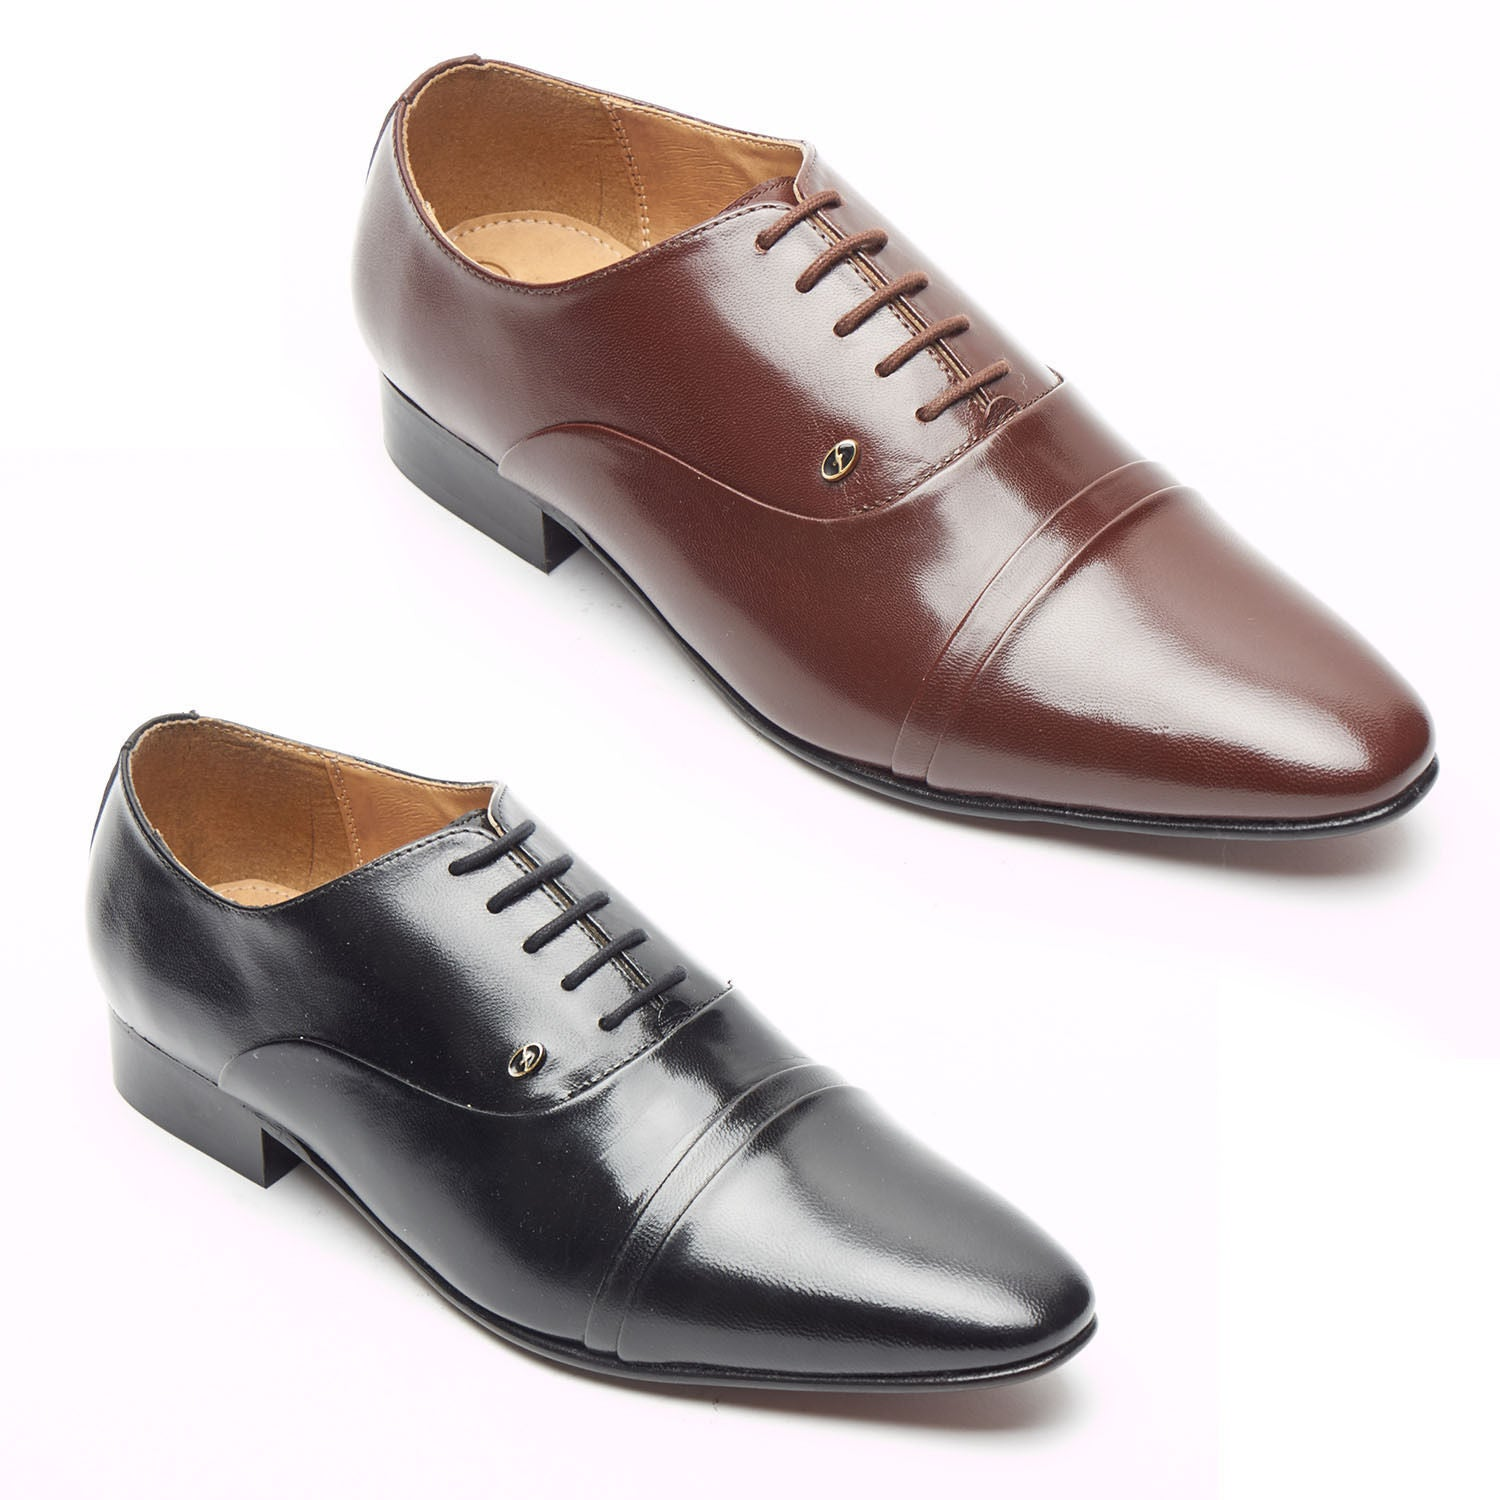 Mens Leather Spanish Shoes - 33451